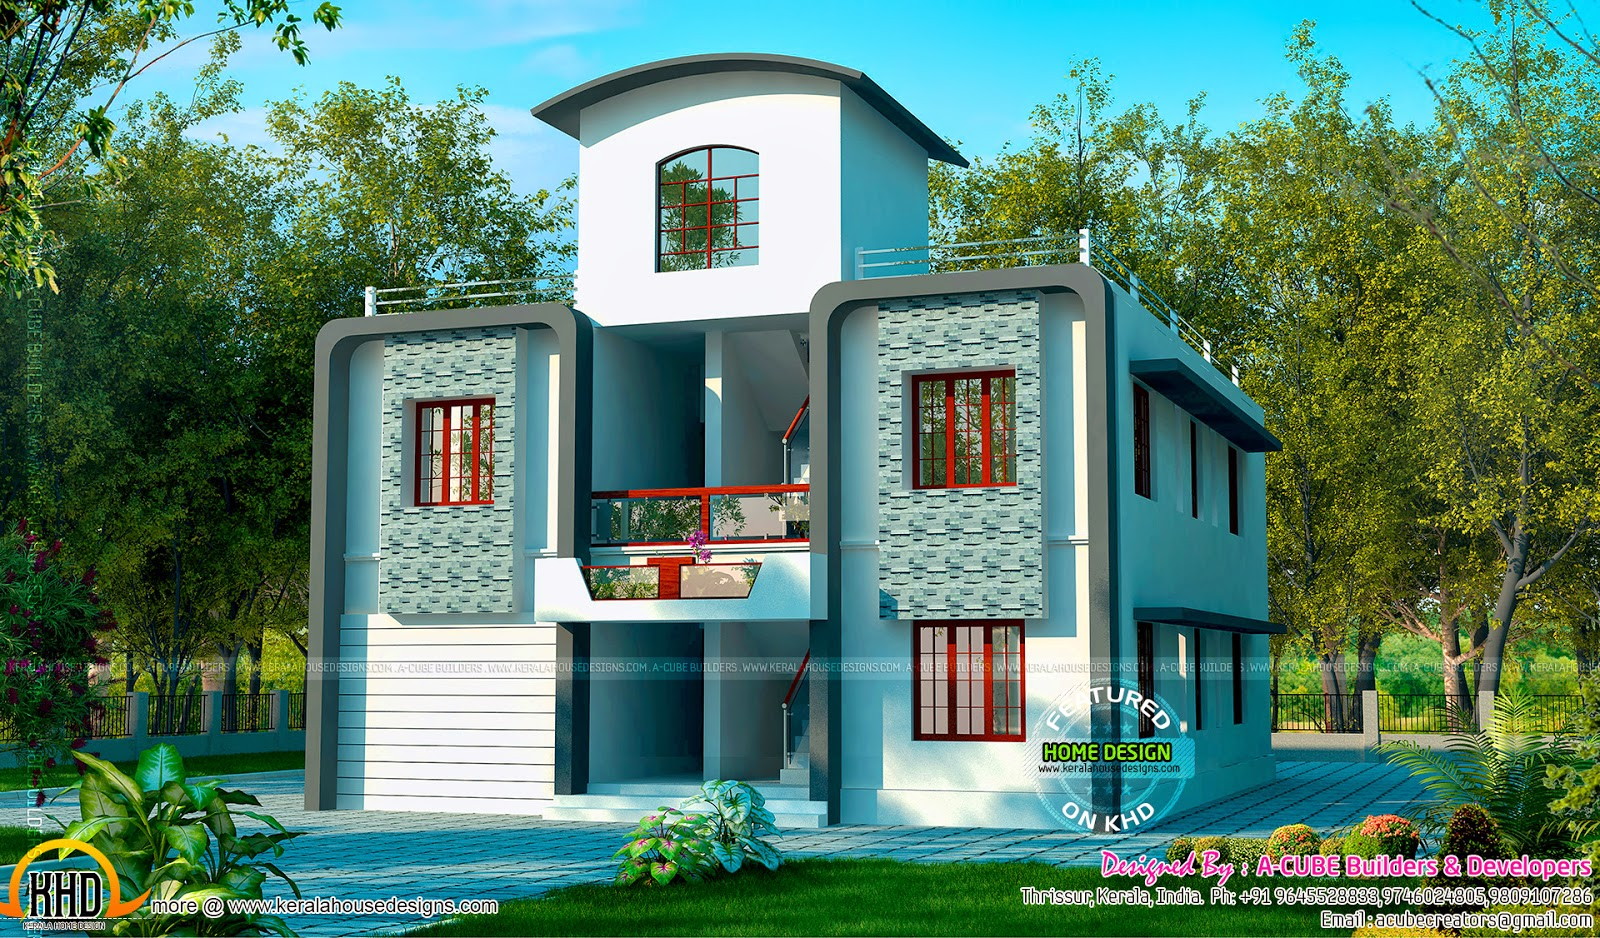 duplex villa exterior kerala home design and floor plans. Black Bedroom Furniture Sets. Home Design Ideas